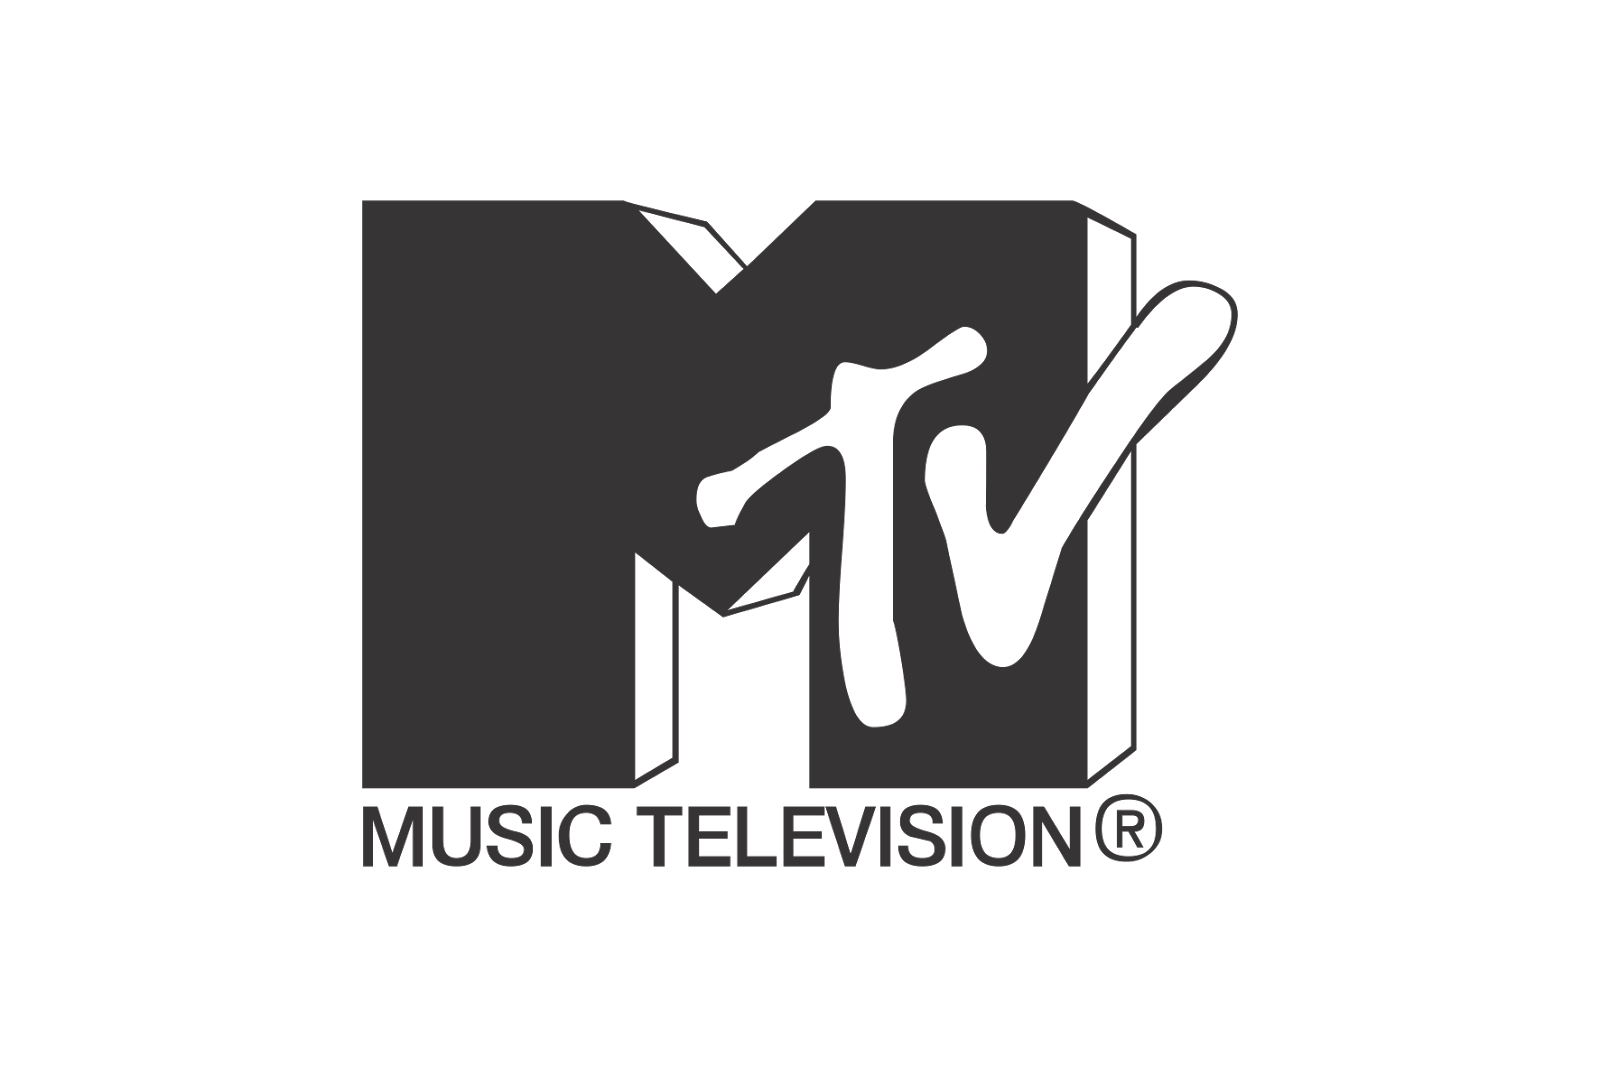 old music mtv png logo 3193